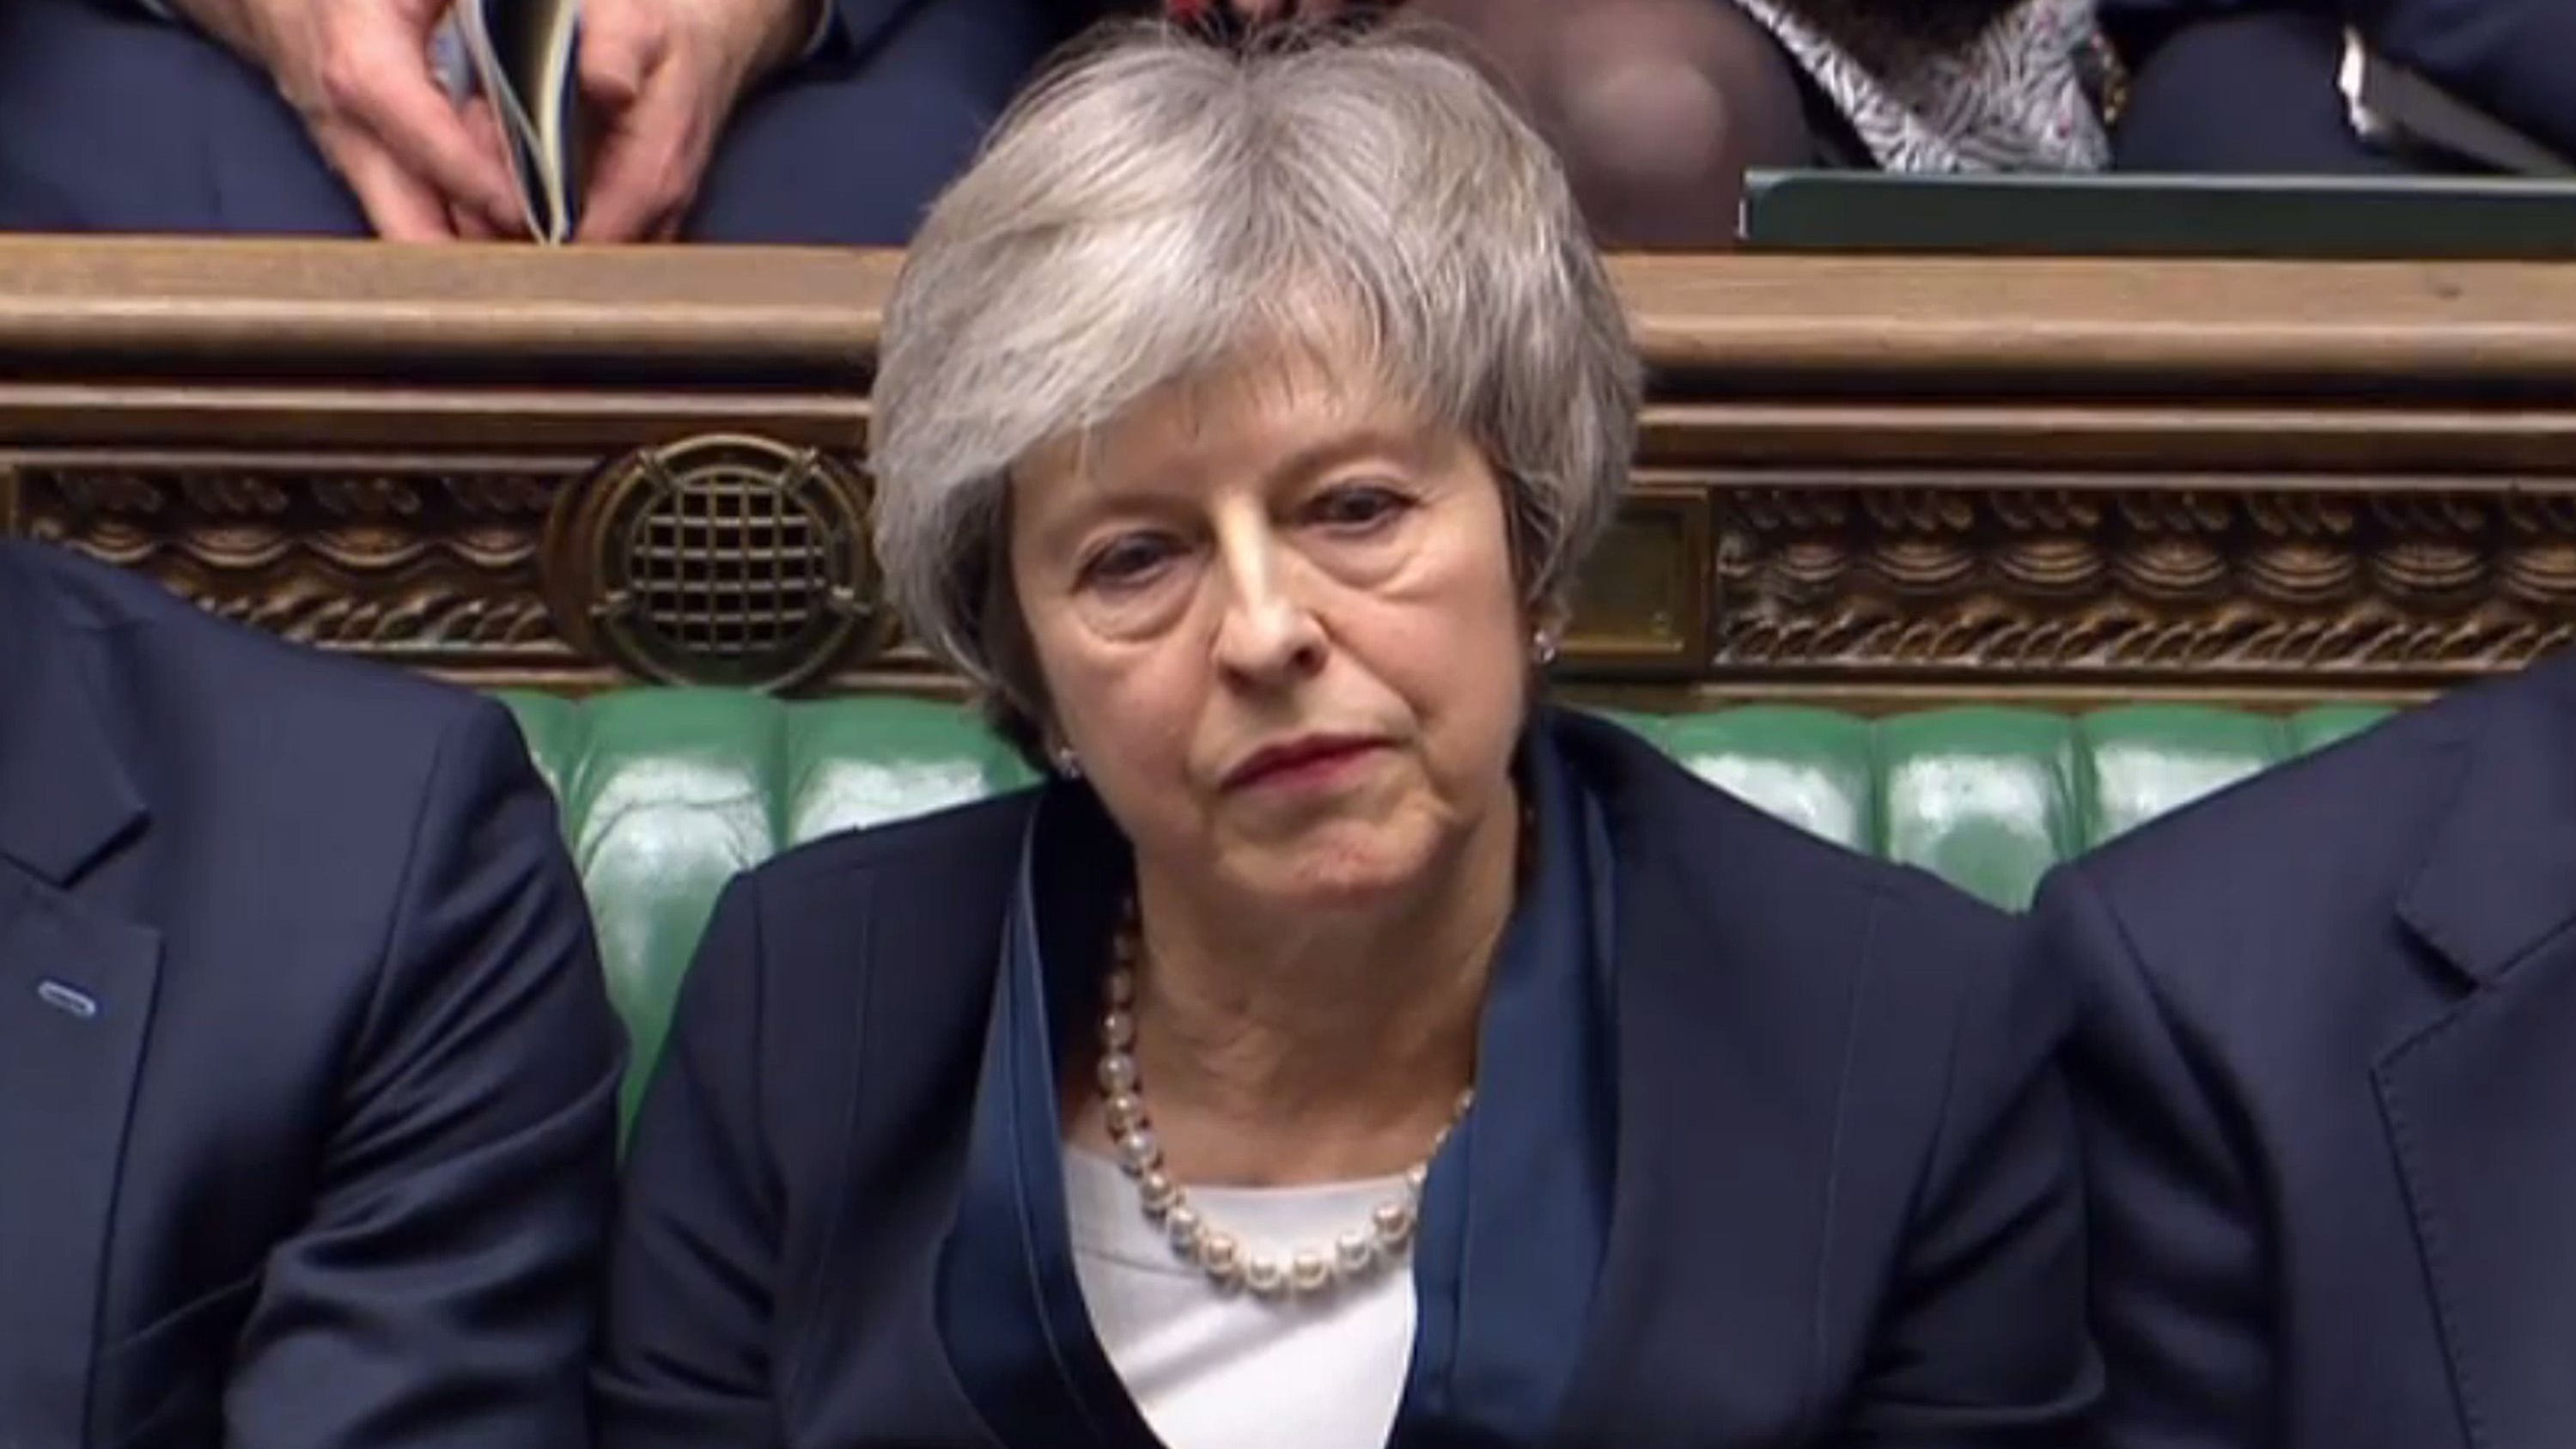 Britain's Prime Minister Theresa May reacts in Parliament on Jan. 15, 2019, as opposition Labour Party leader Jeremy Corbyn informs lawmakers he tabled a vote of no confidence in her government.